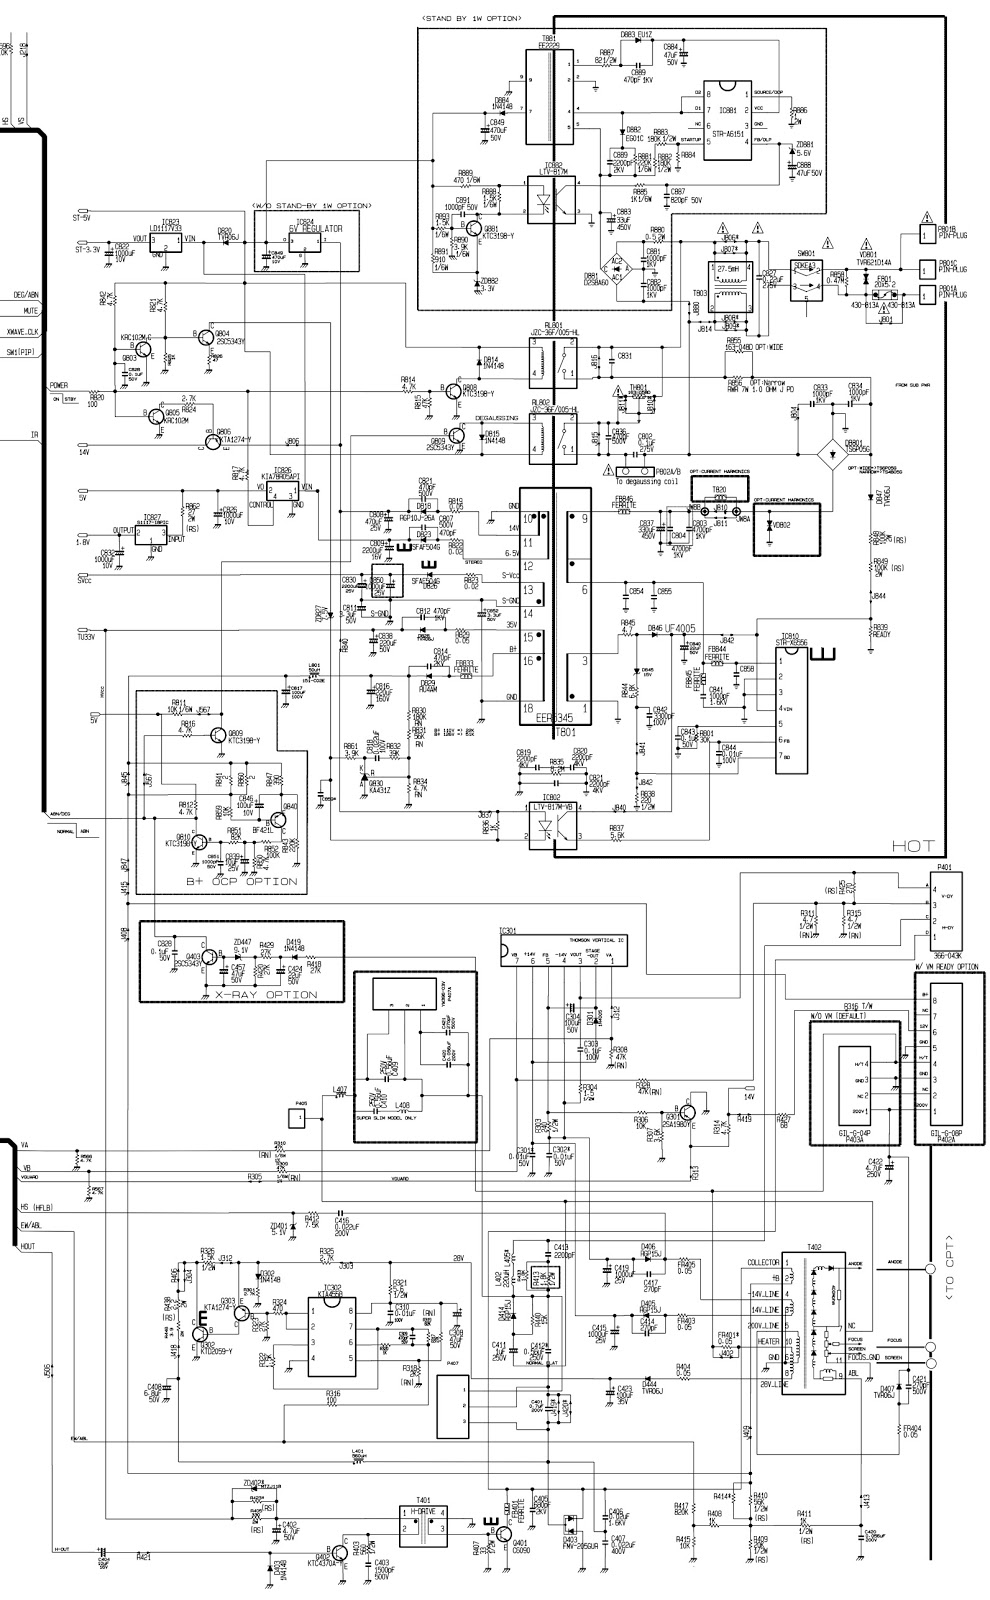 Toshiba Tv Circuit Diagram | car block wiring diagram on 7 pin trailer colors, 7 pin power supply, 7 pin power cord, 7 pin wire plug, 7 pin wire adapter, ford 7 pin trailer wiring harness, 7 pin terminal block, seven pin wiring harness, 7 pin wiring diagram,